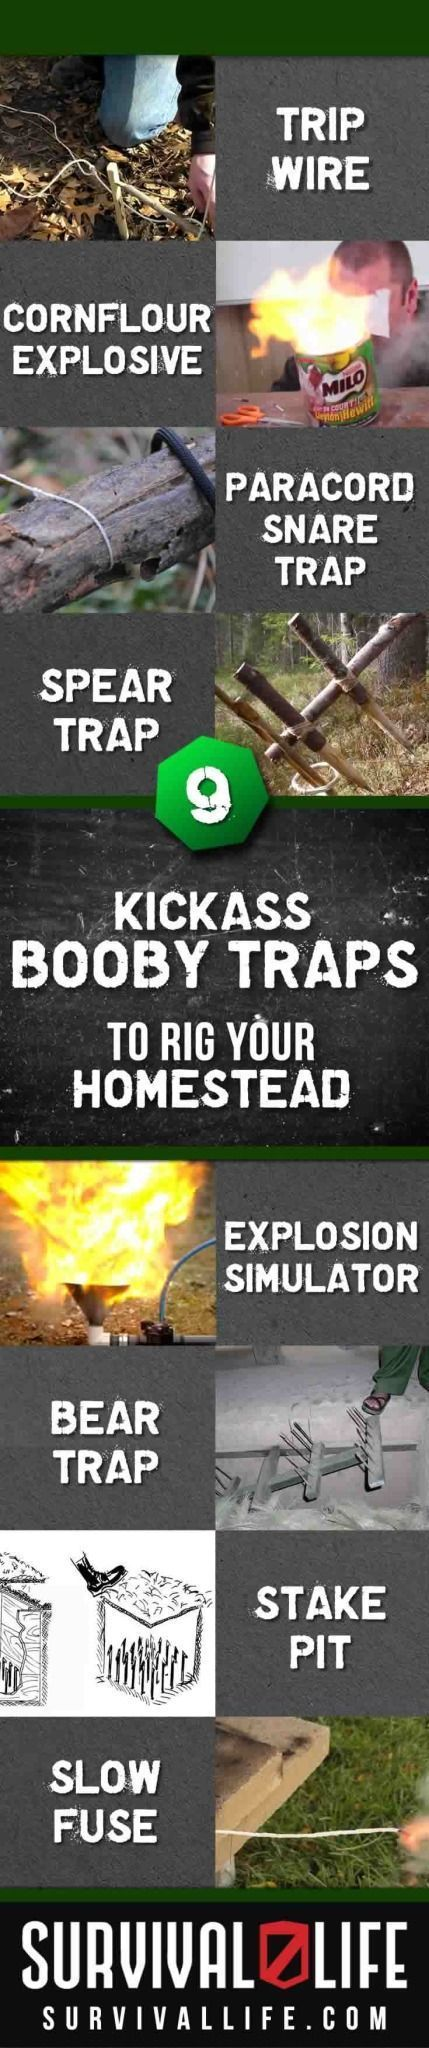 Booby Traps for DIY Home Security | Emergency Preparedness and DIY Home Defense Ideas and Projects | Survival Life Prepping and Gear pnf stretching fun #survivalgear